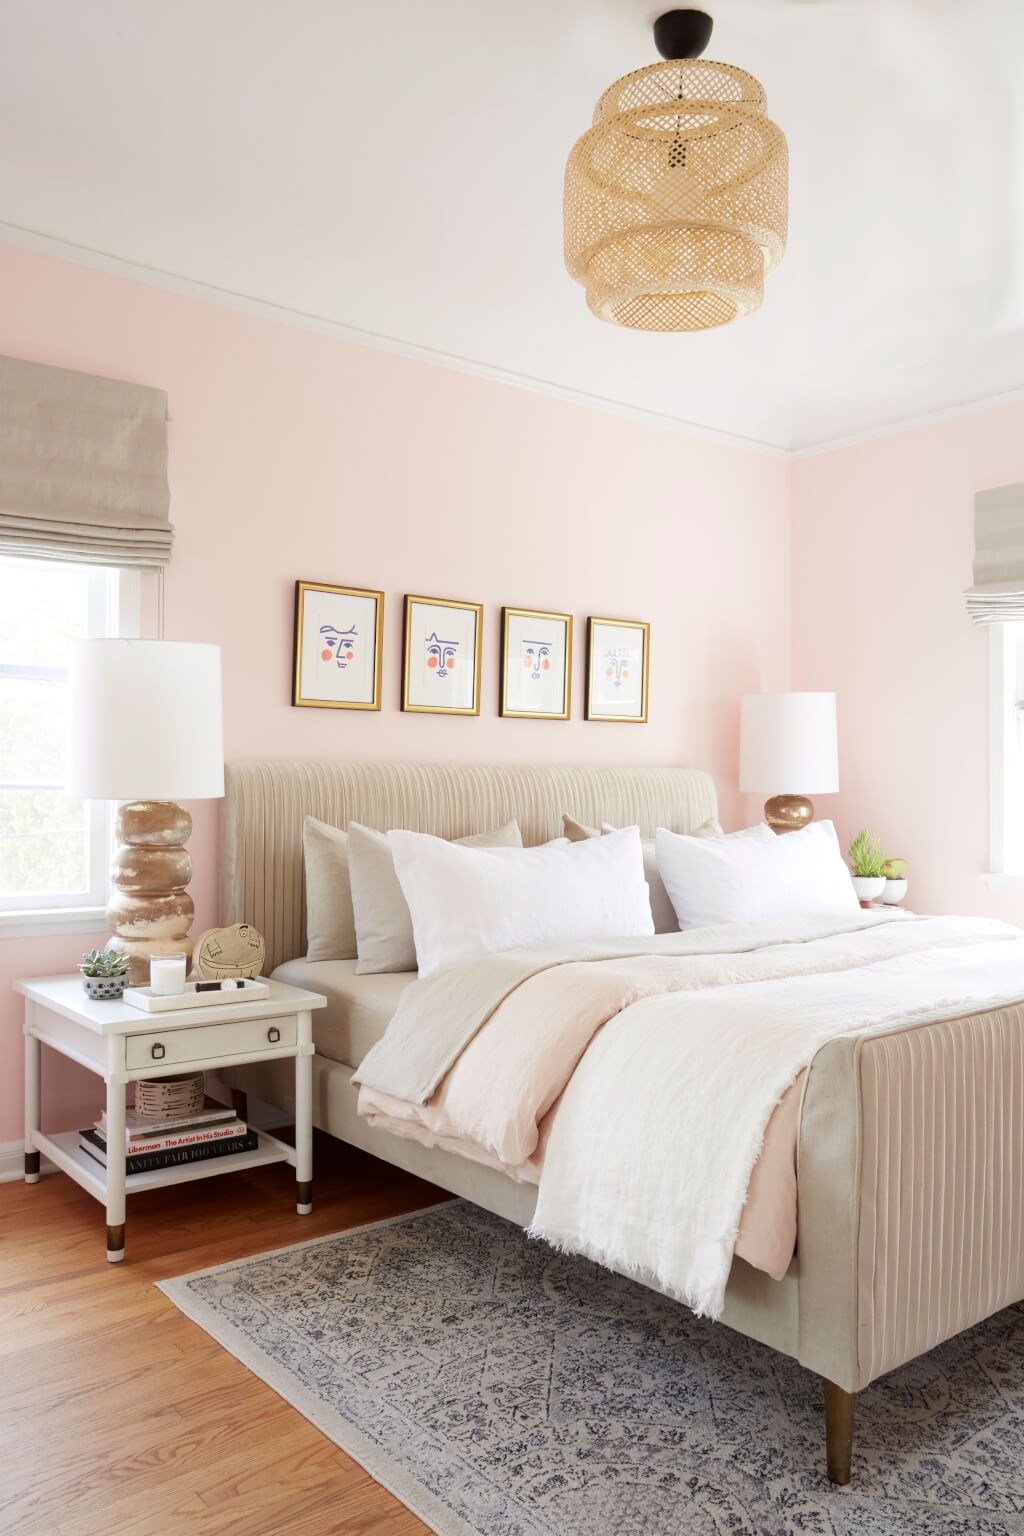 Orlando S Master Bedroom Reveal Emily Henderson Pink Bedroom Design Woman Bedroom Pink Bedroom Walls